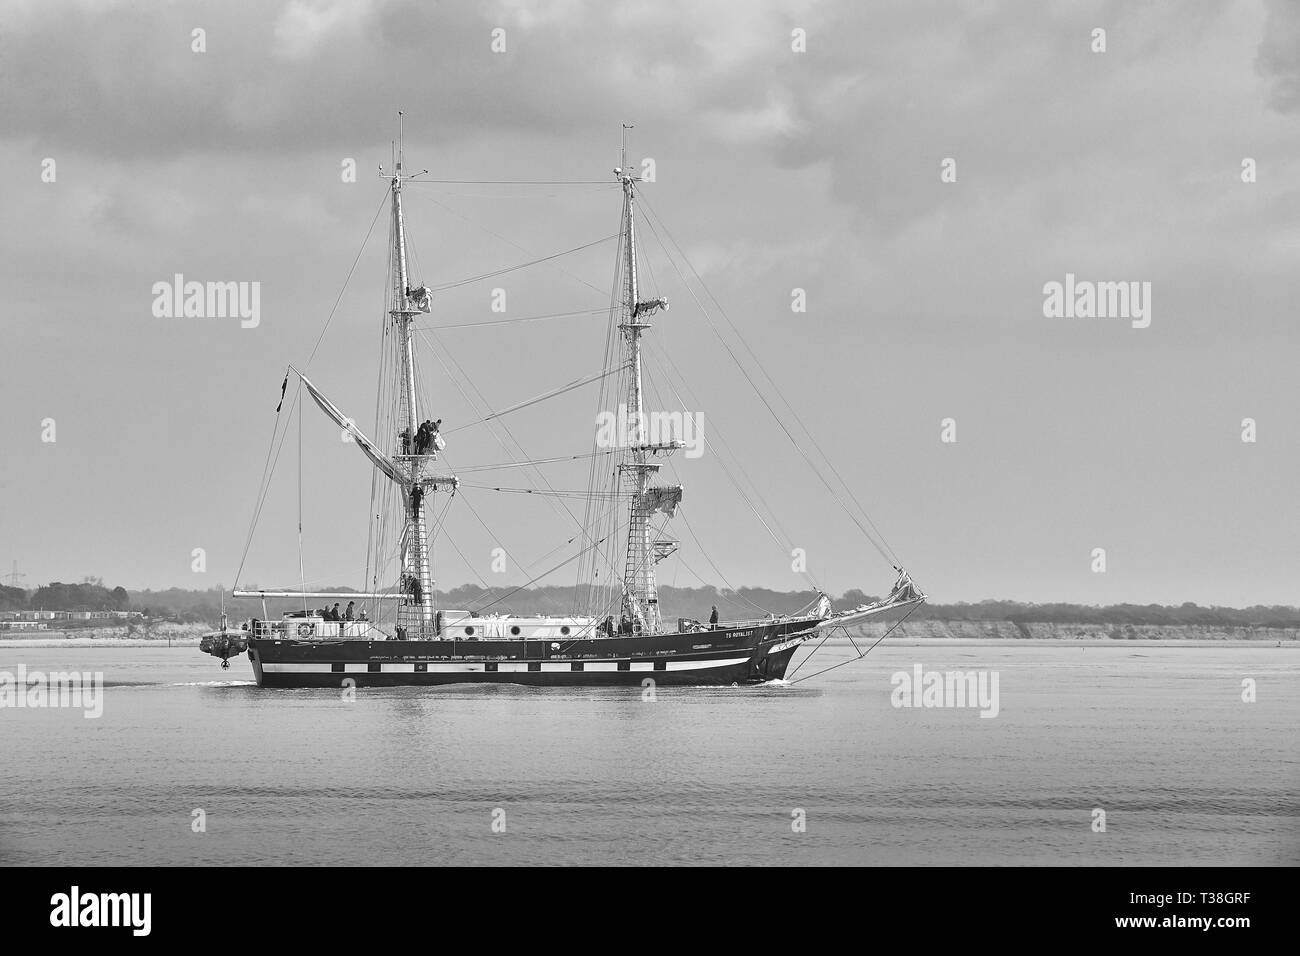 Black And White Photo Of Sailors Setting Sail On The Training Ship, TS ROYALIST (Tall Ship), Departing The Port Of Southampton, 28 March 2019. - Stock Image